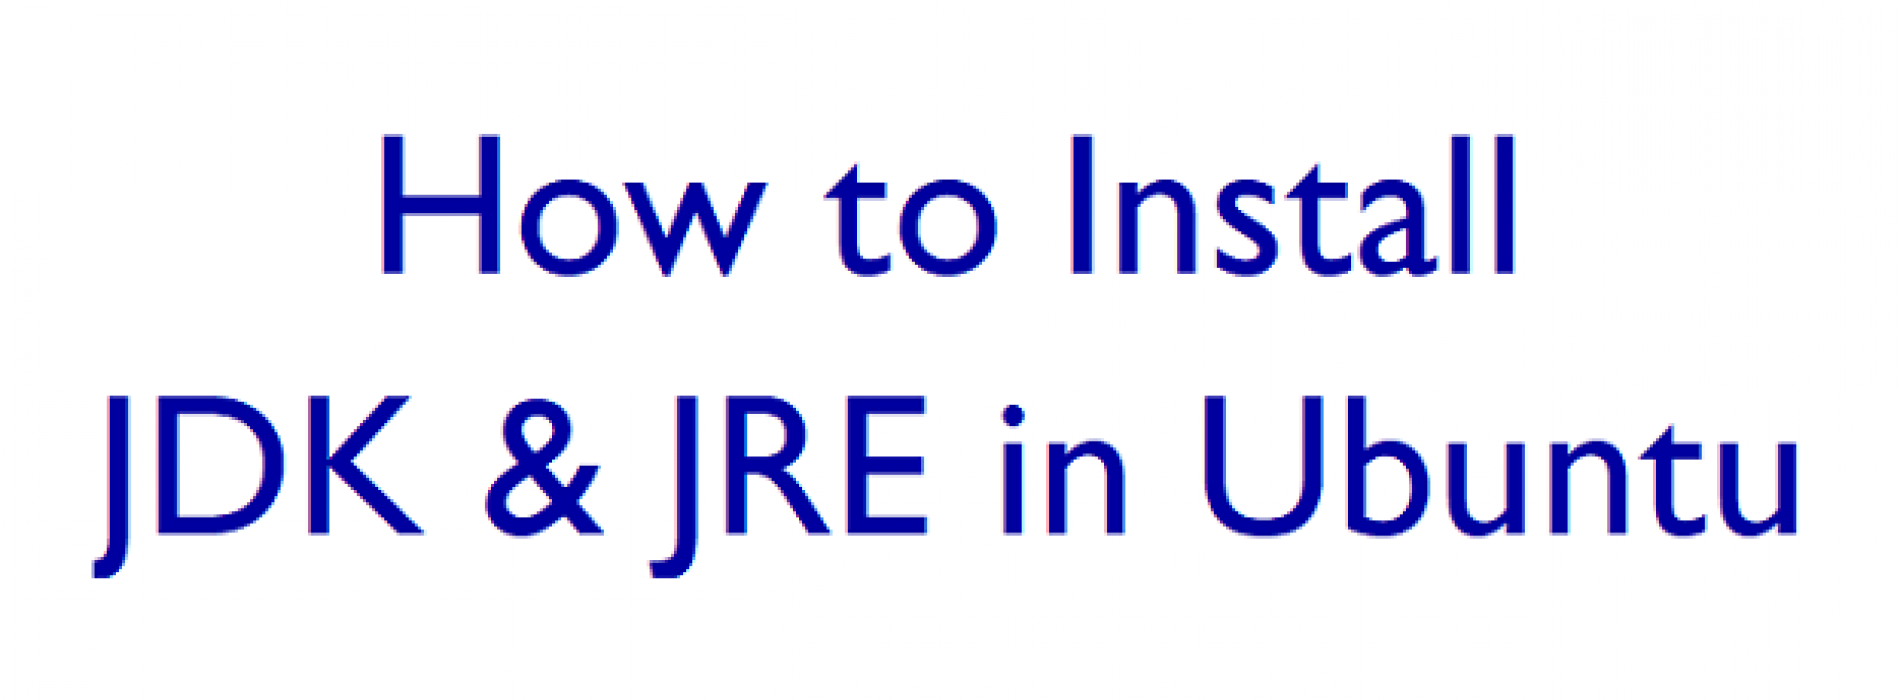 How To Install JDK And JRE In Ubuntu?